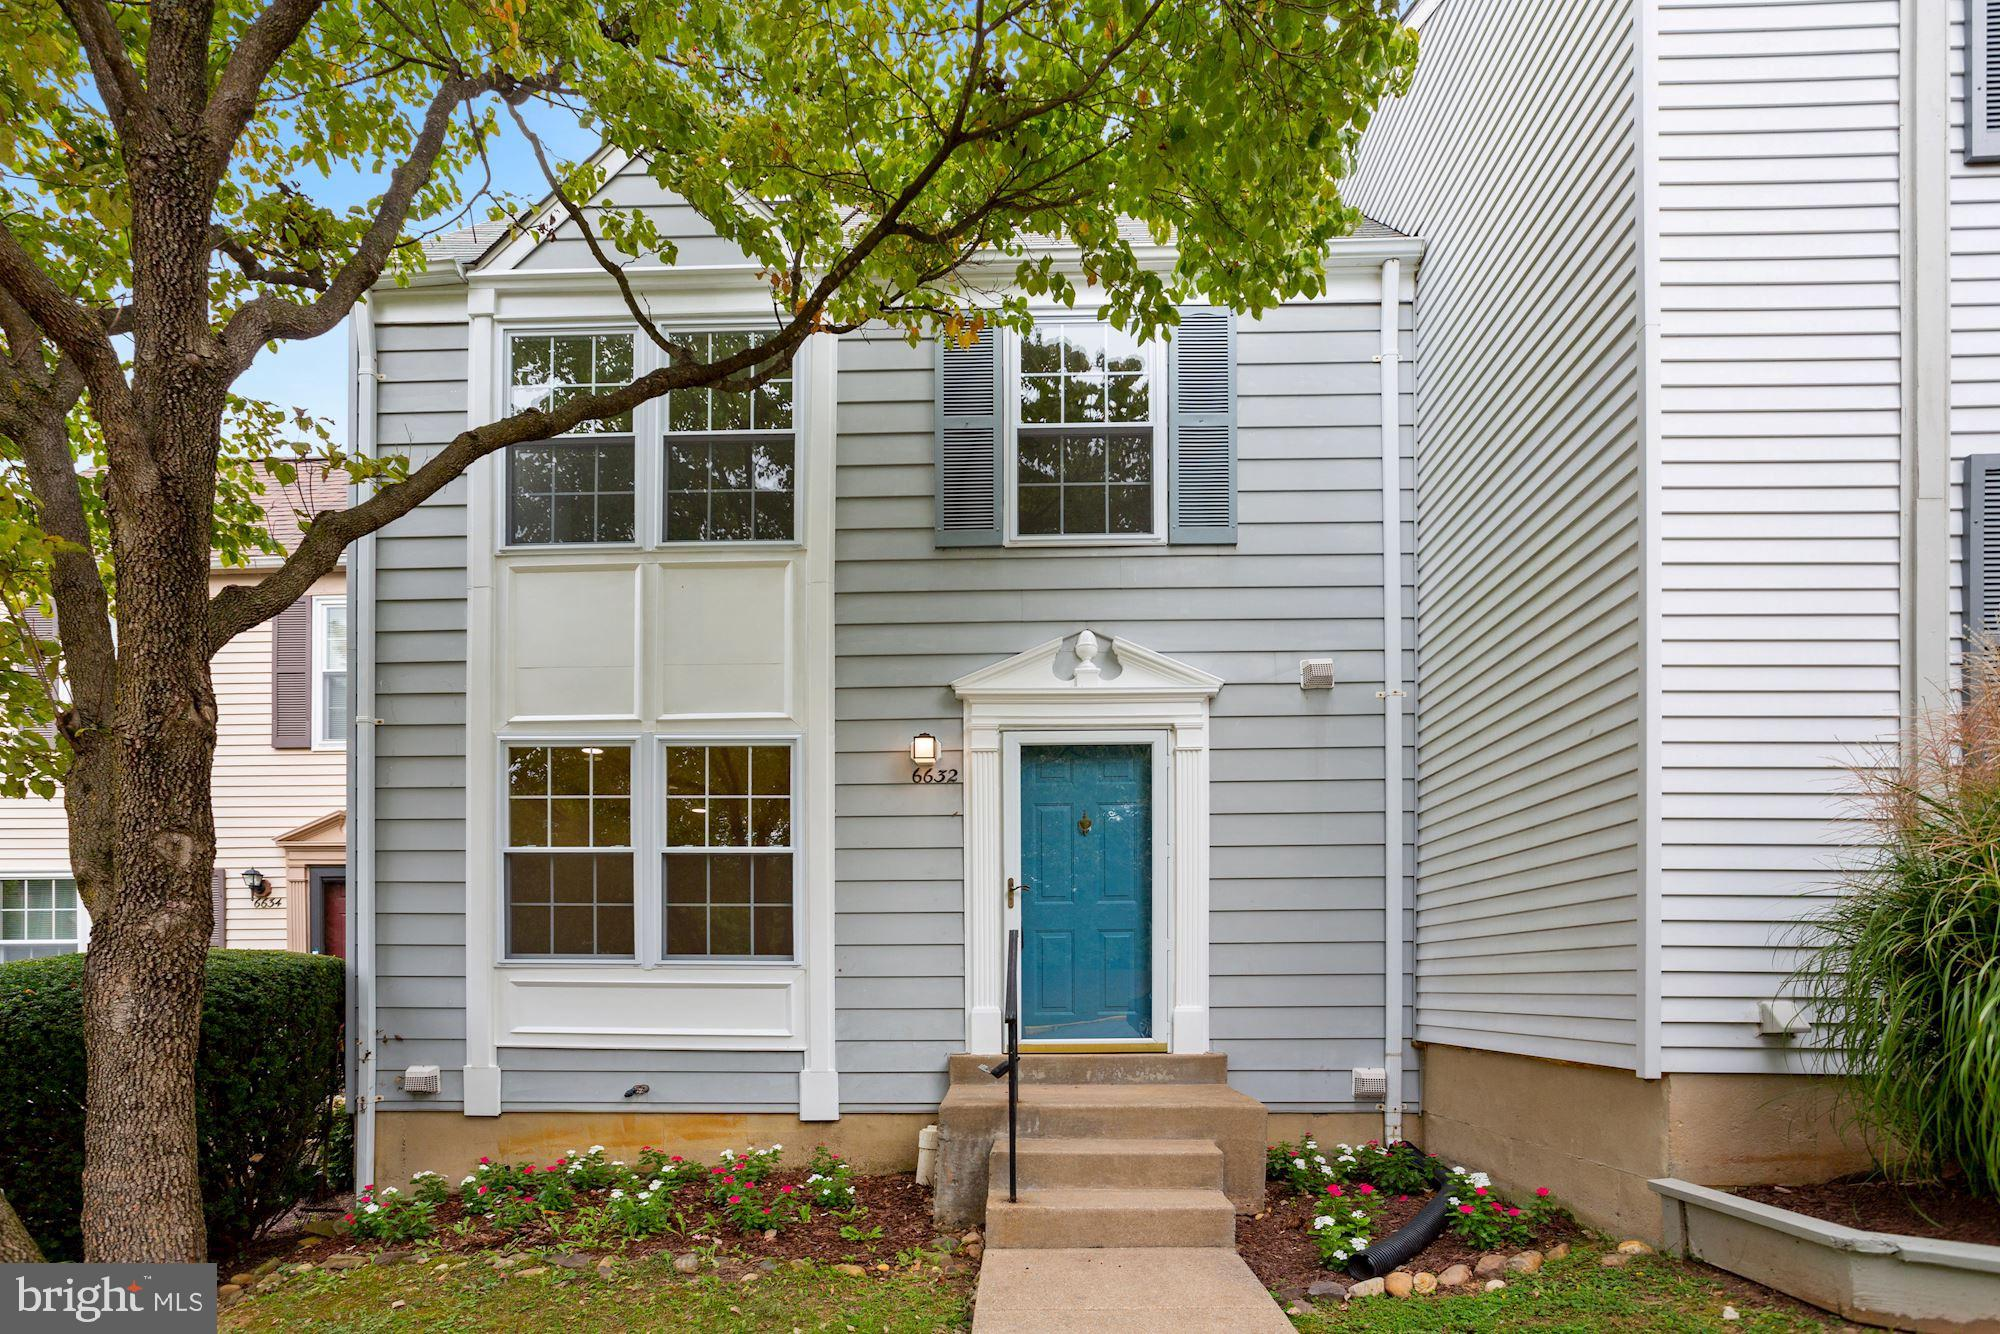 Welcome to this stunningly renovated dual master-suite townhome nestled in the sought-after Amberlei